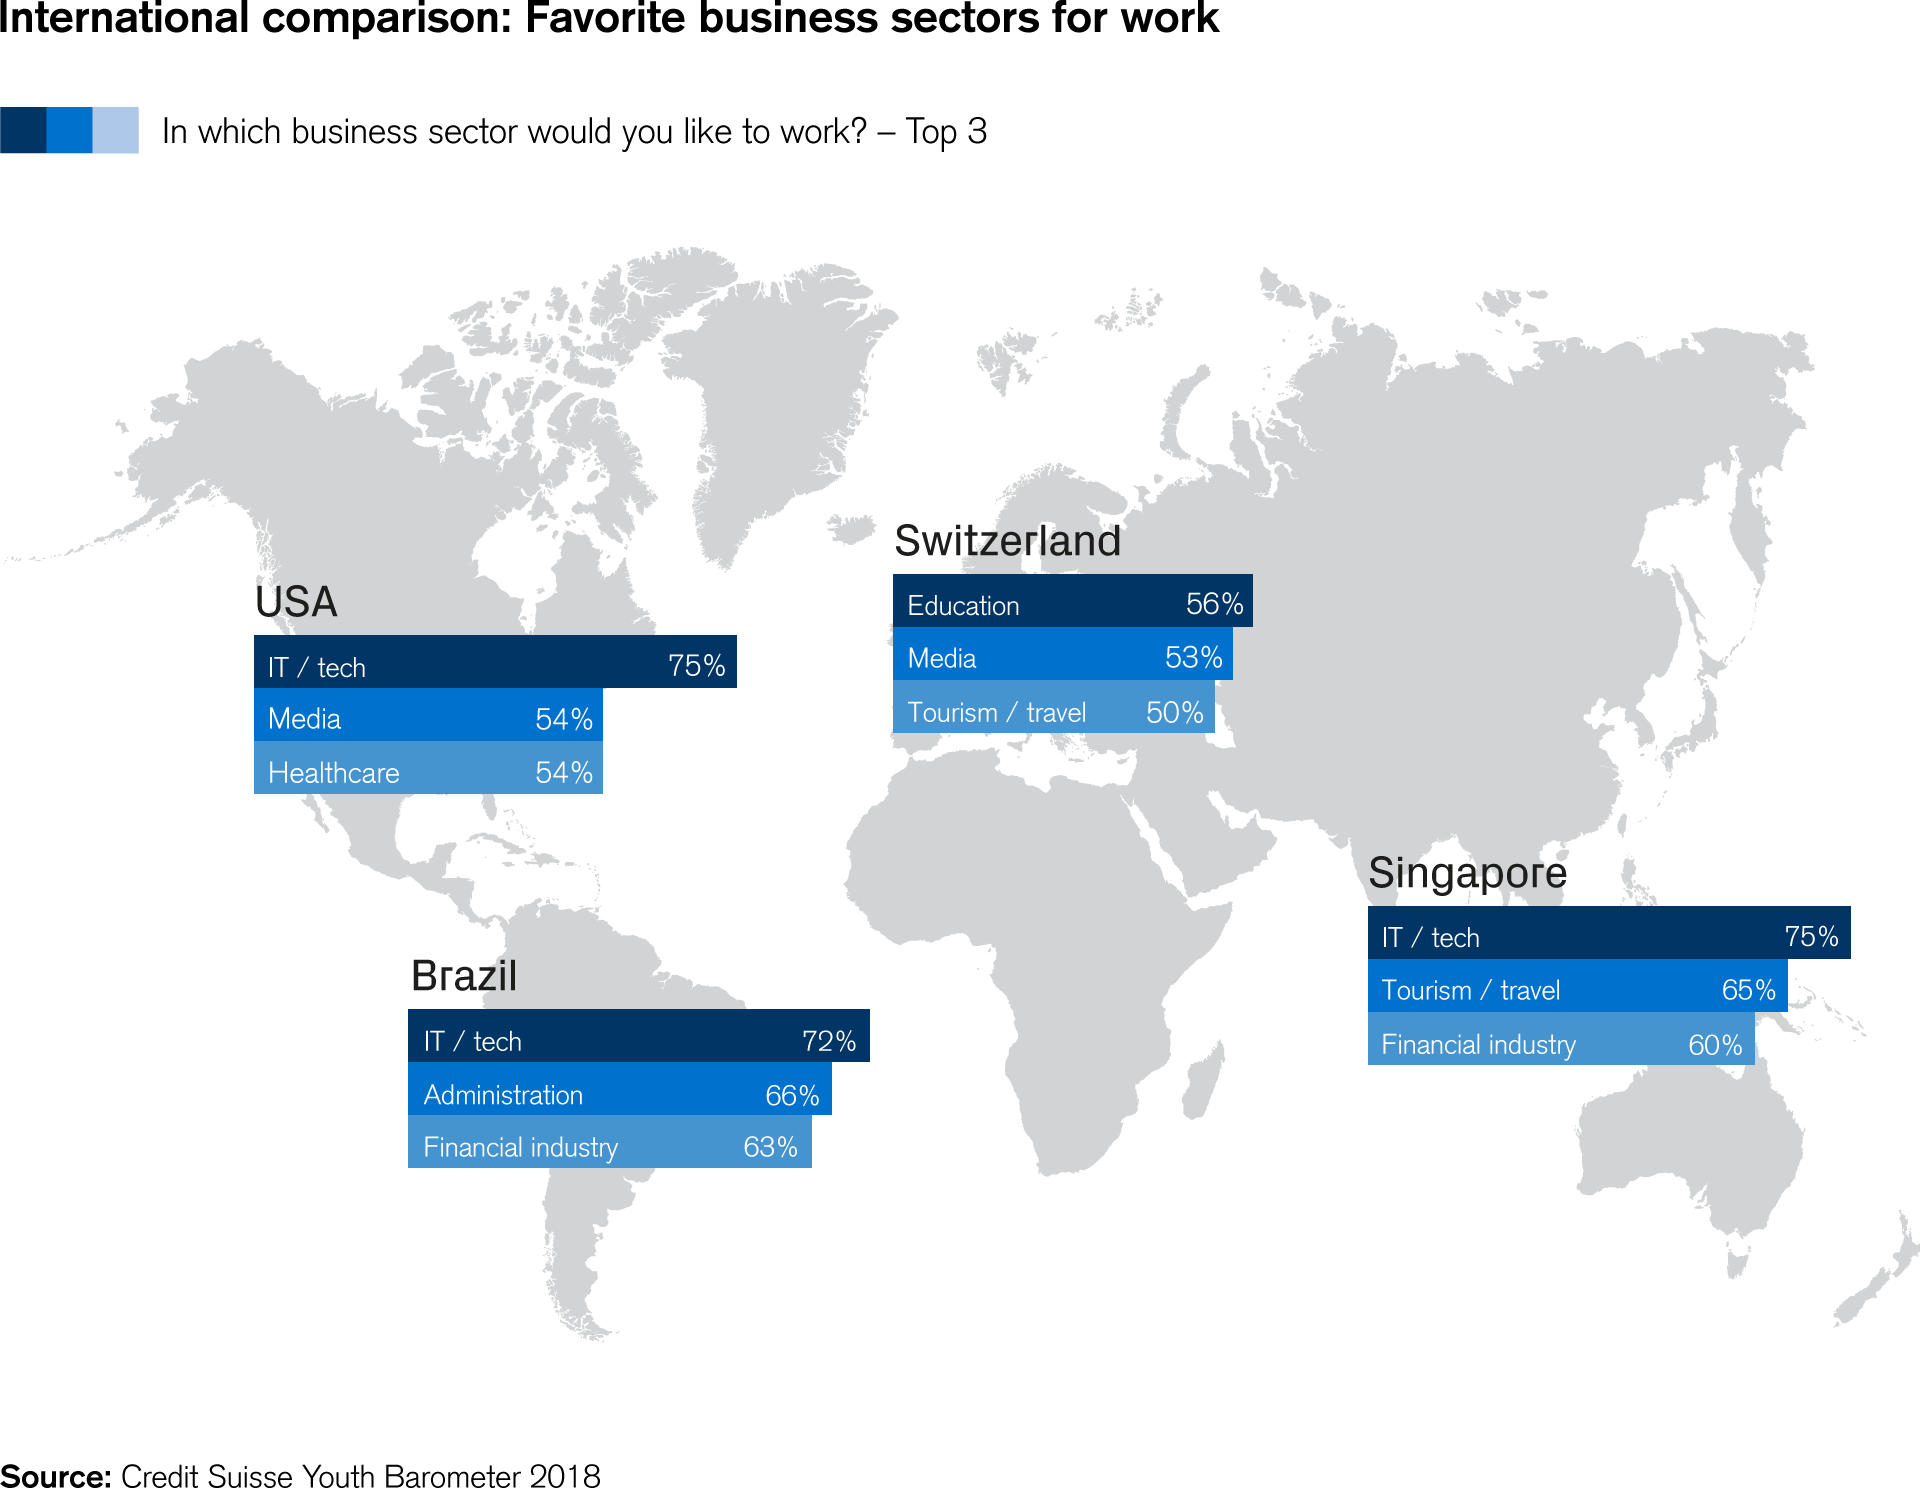 International comparison: Favorite business sectors for work